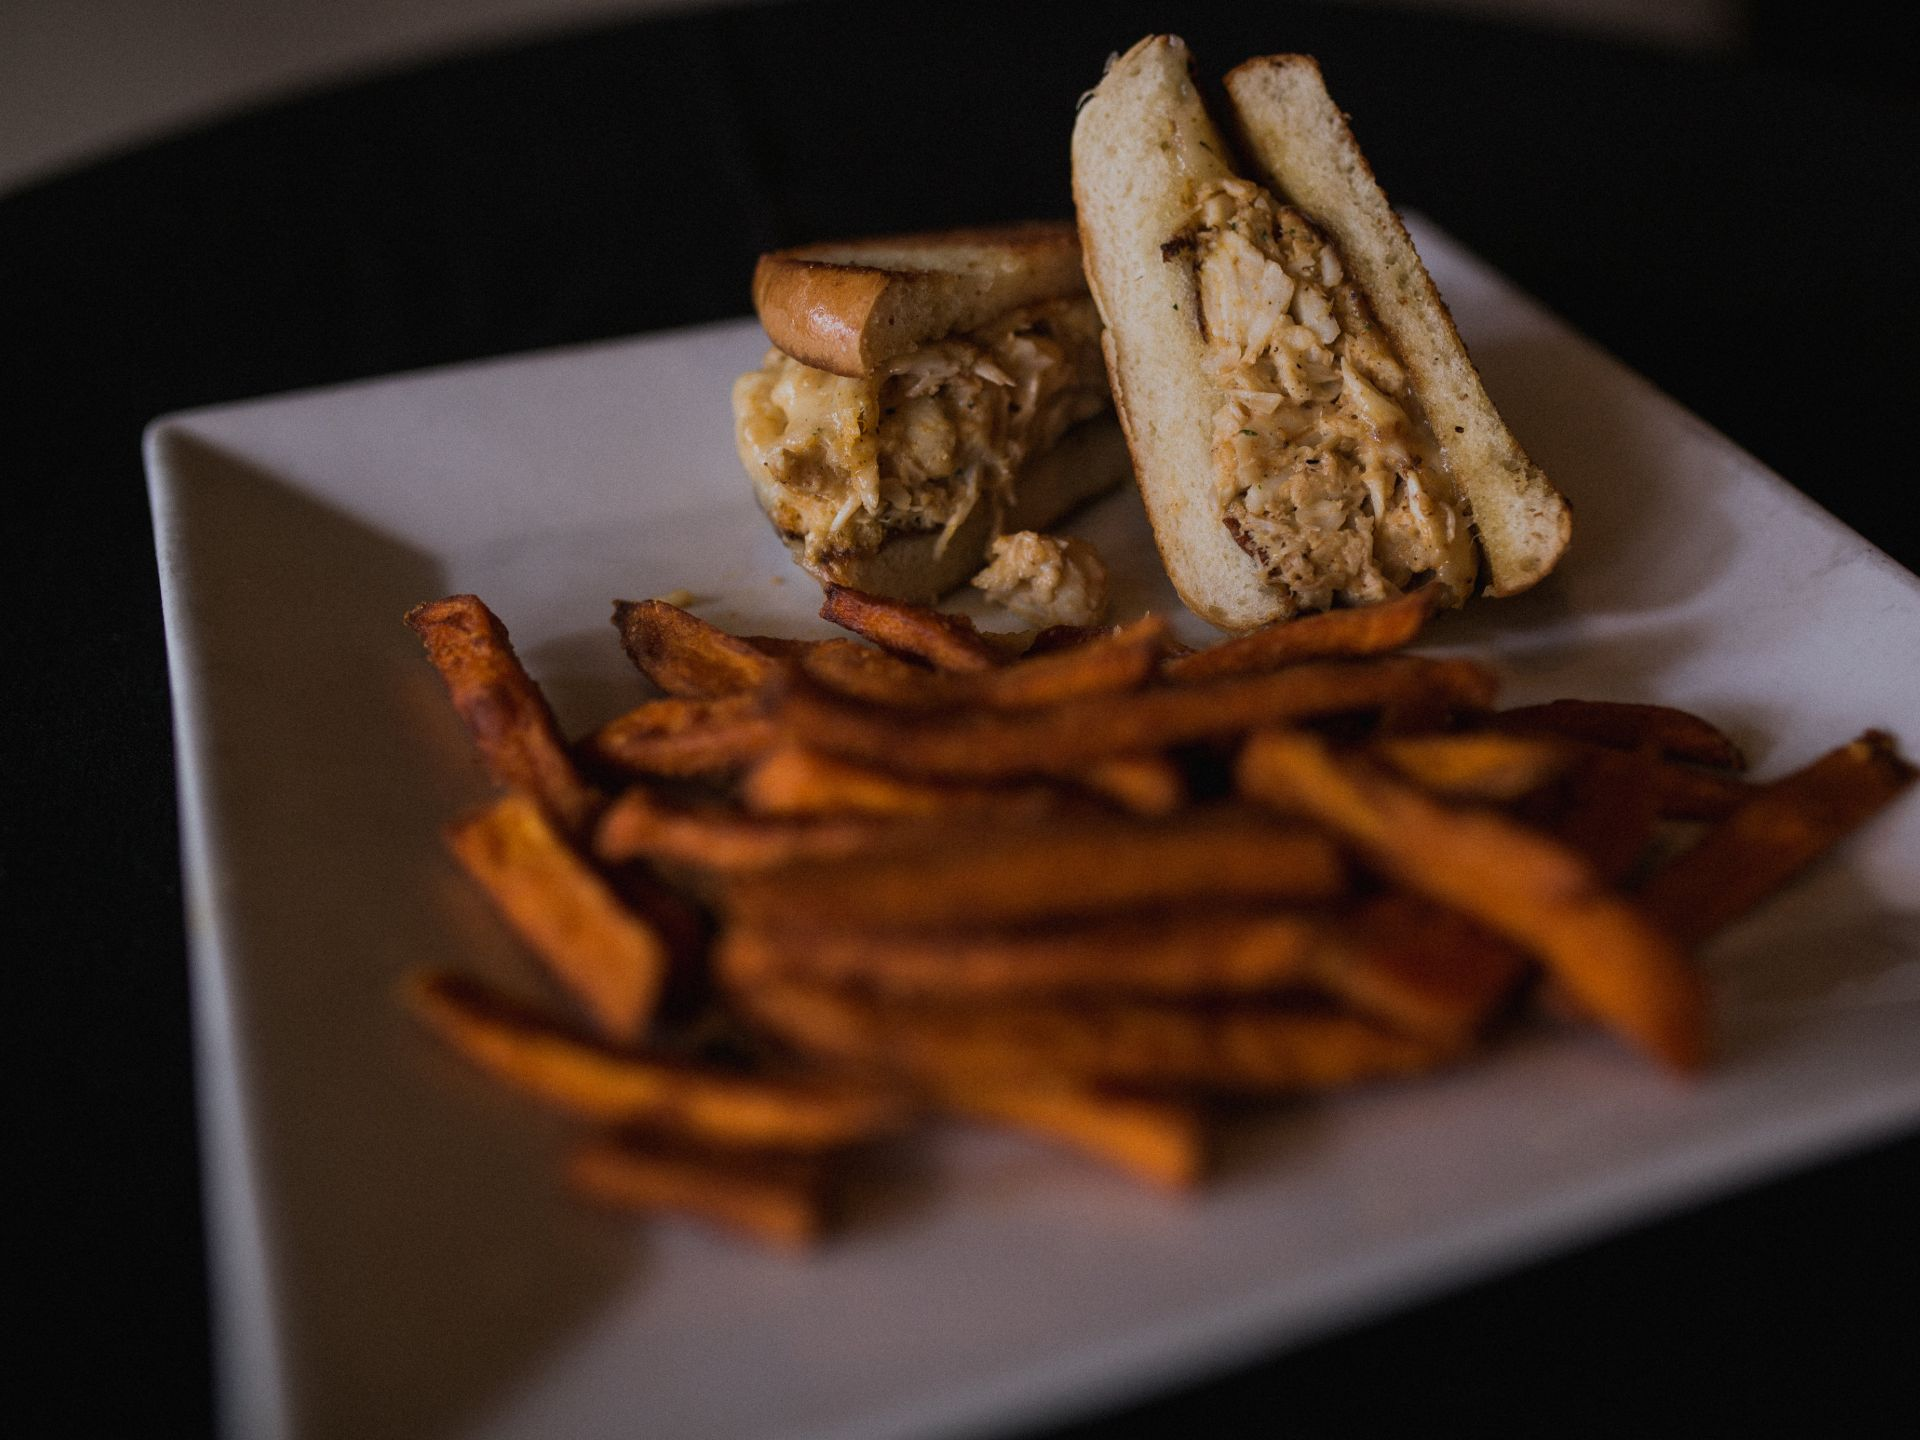 Crab cake melt on a plate with sweet potato fries